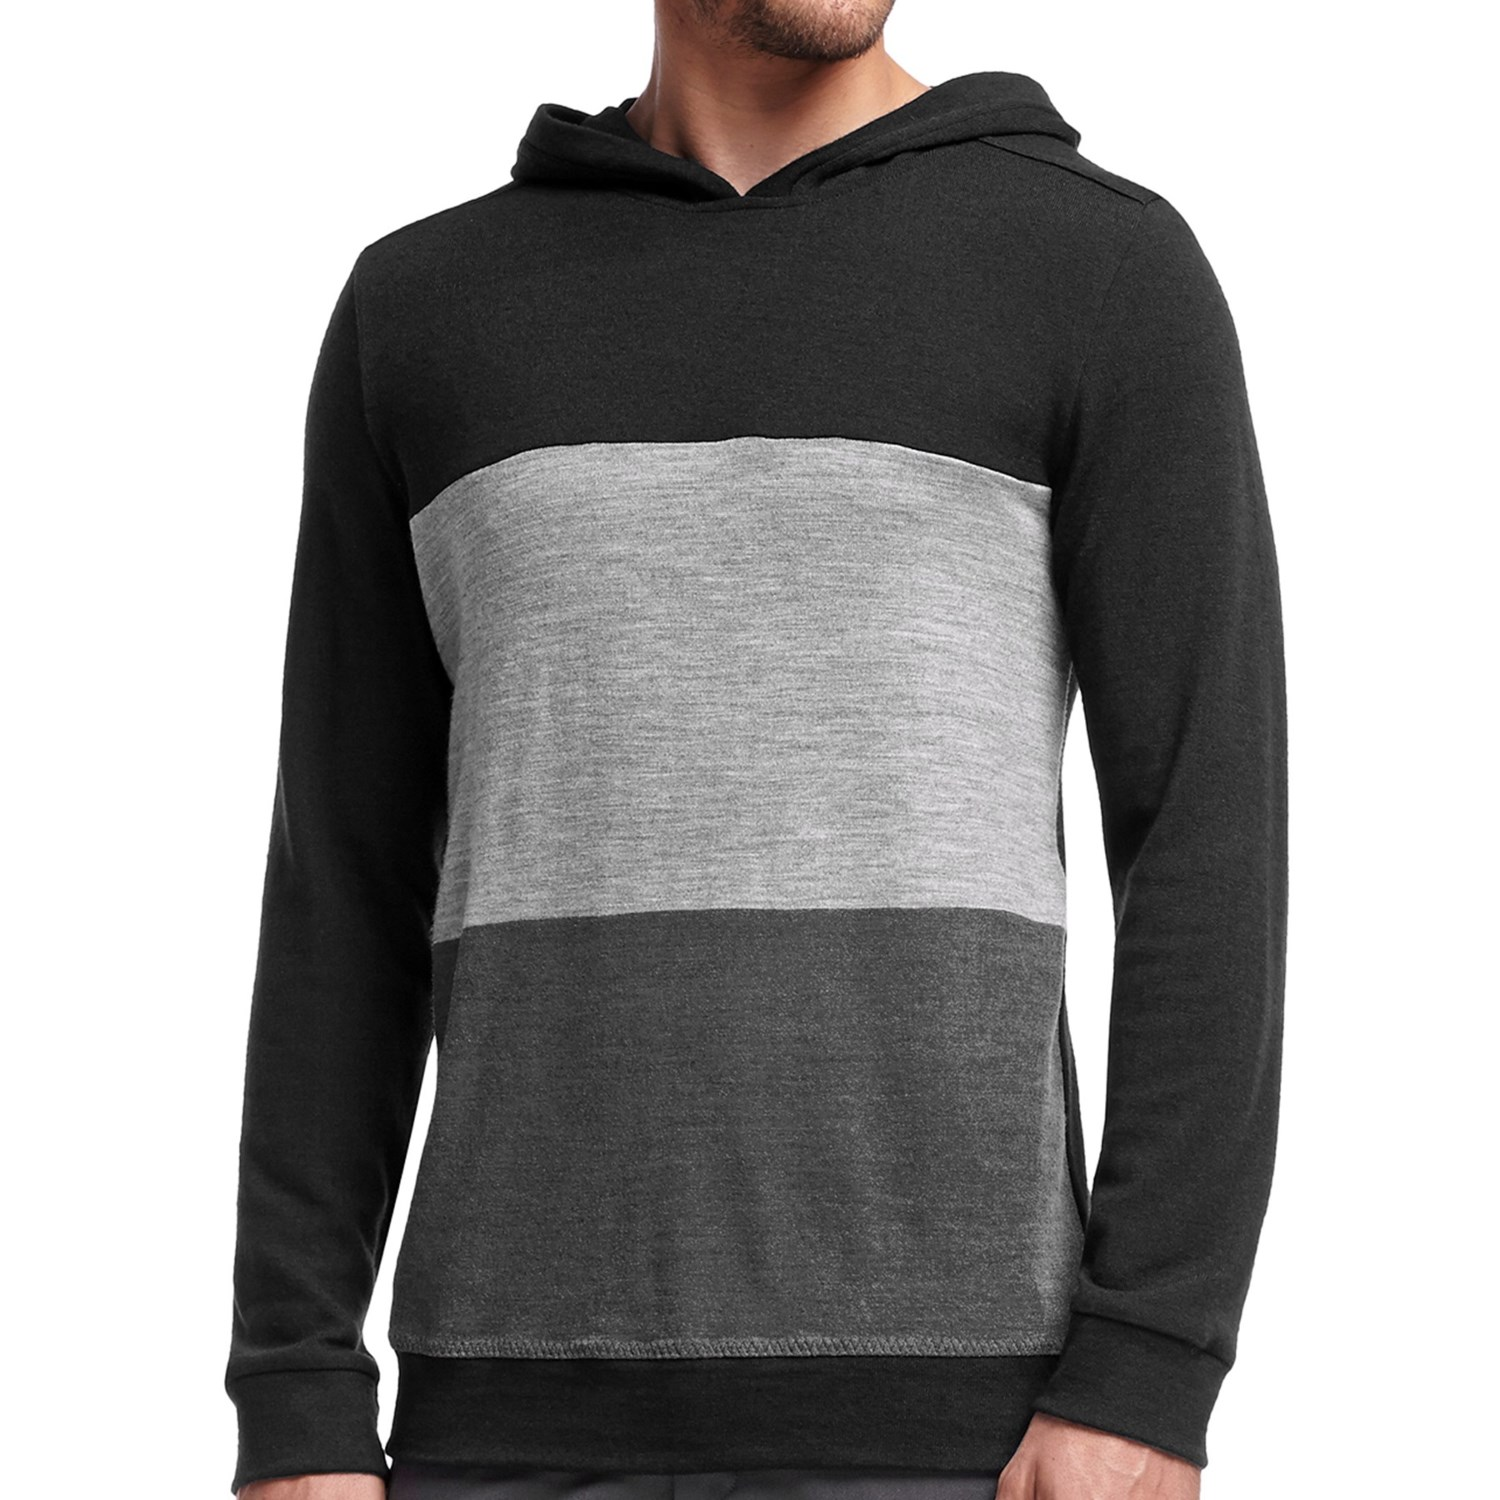 Submit Your Own Image · Icebreaker Escape Hoodie - Merino